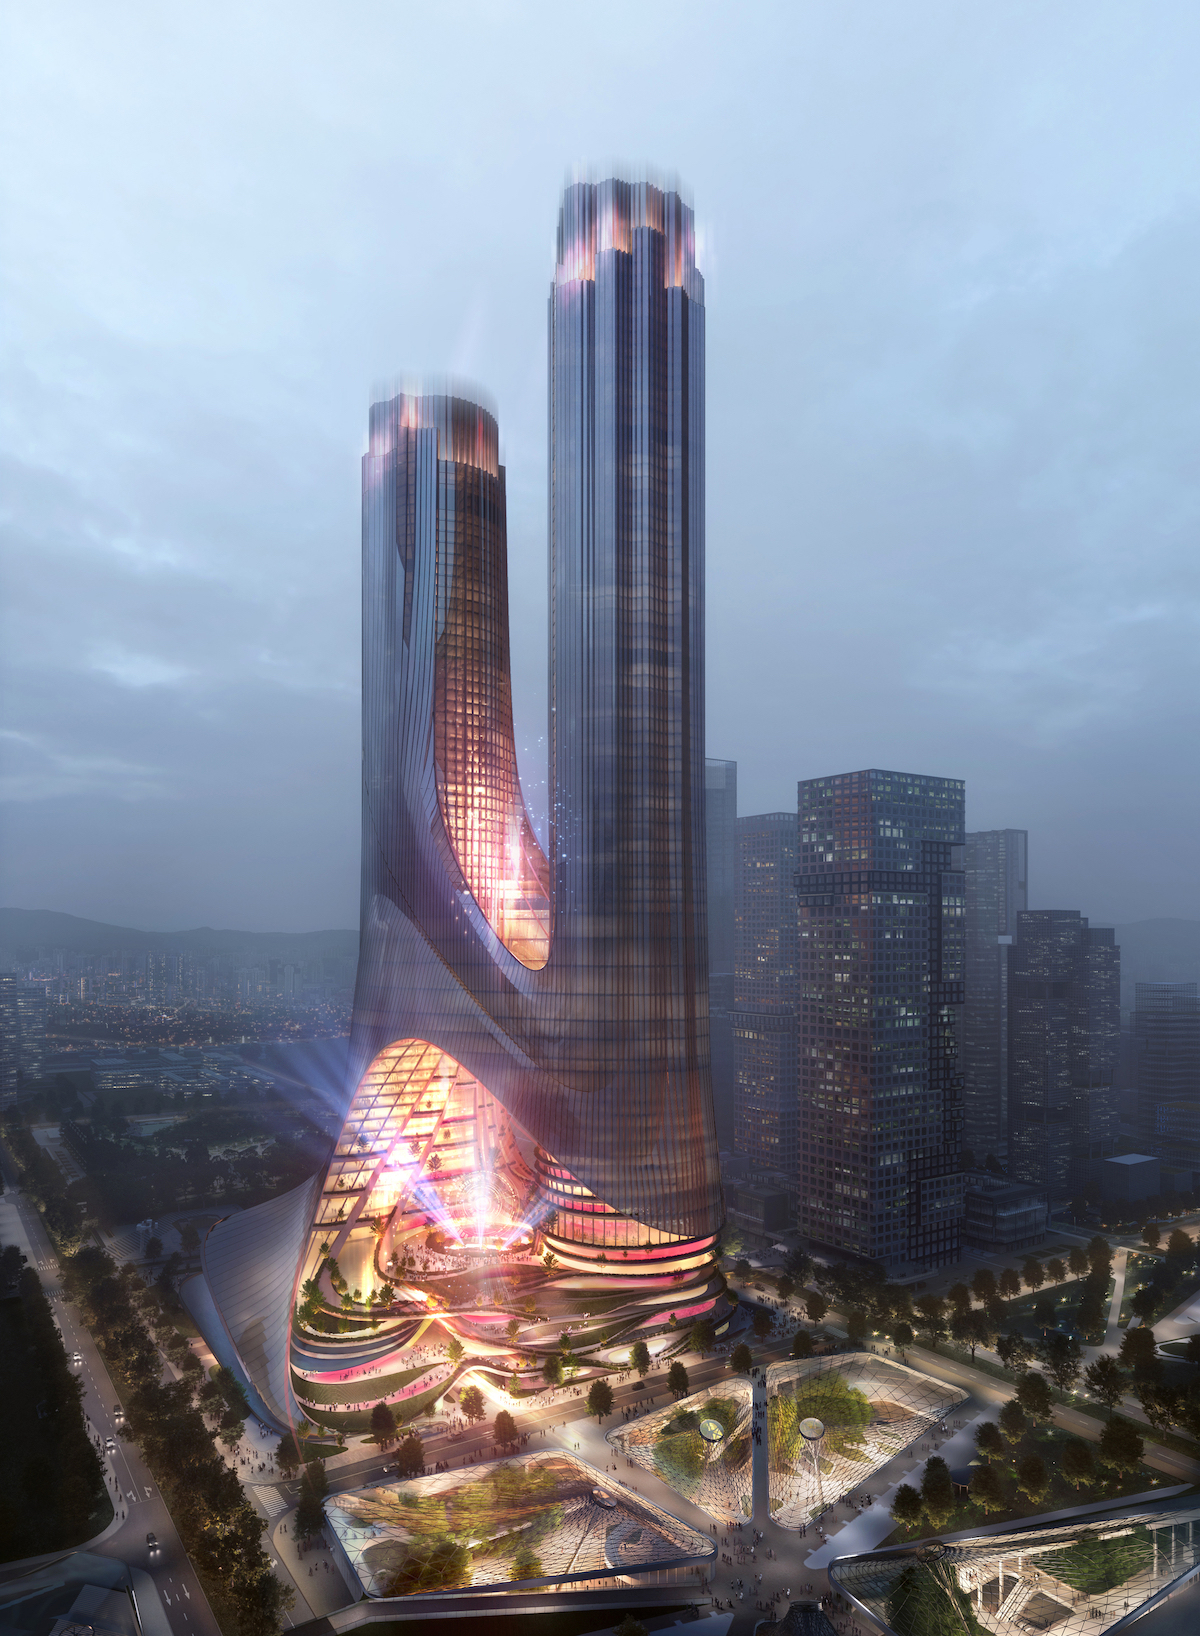 Zaha Hadid Architects Wins Tower Competition for Shenzhen Bay